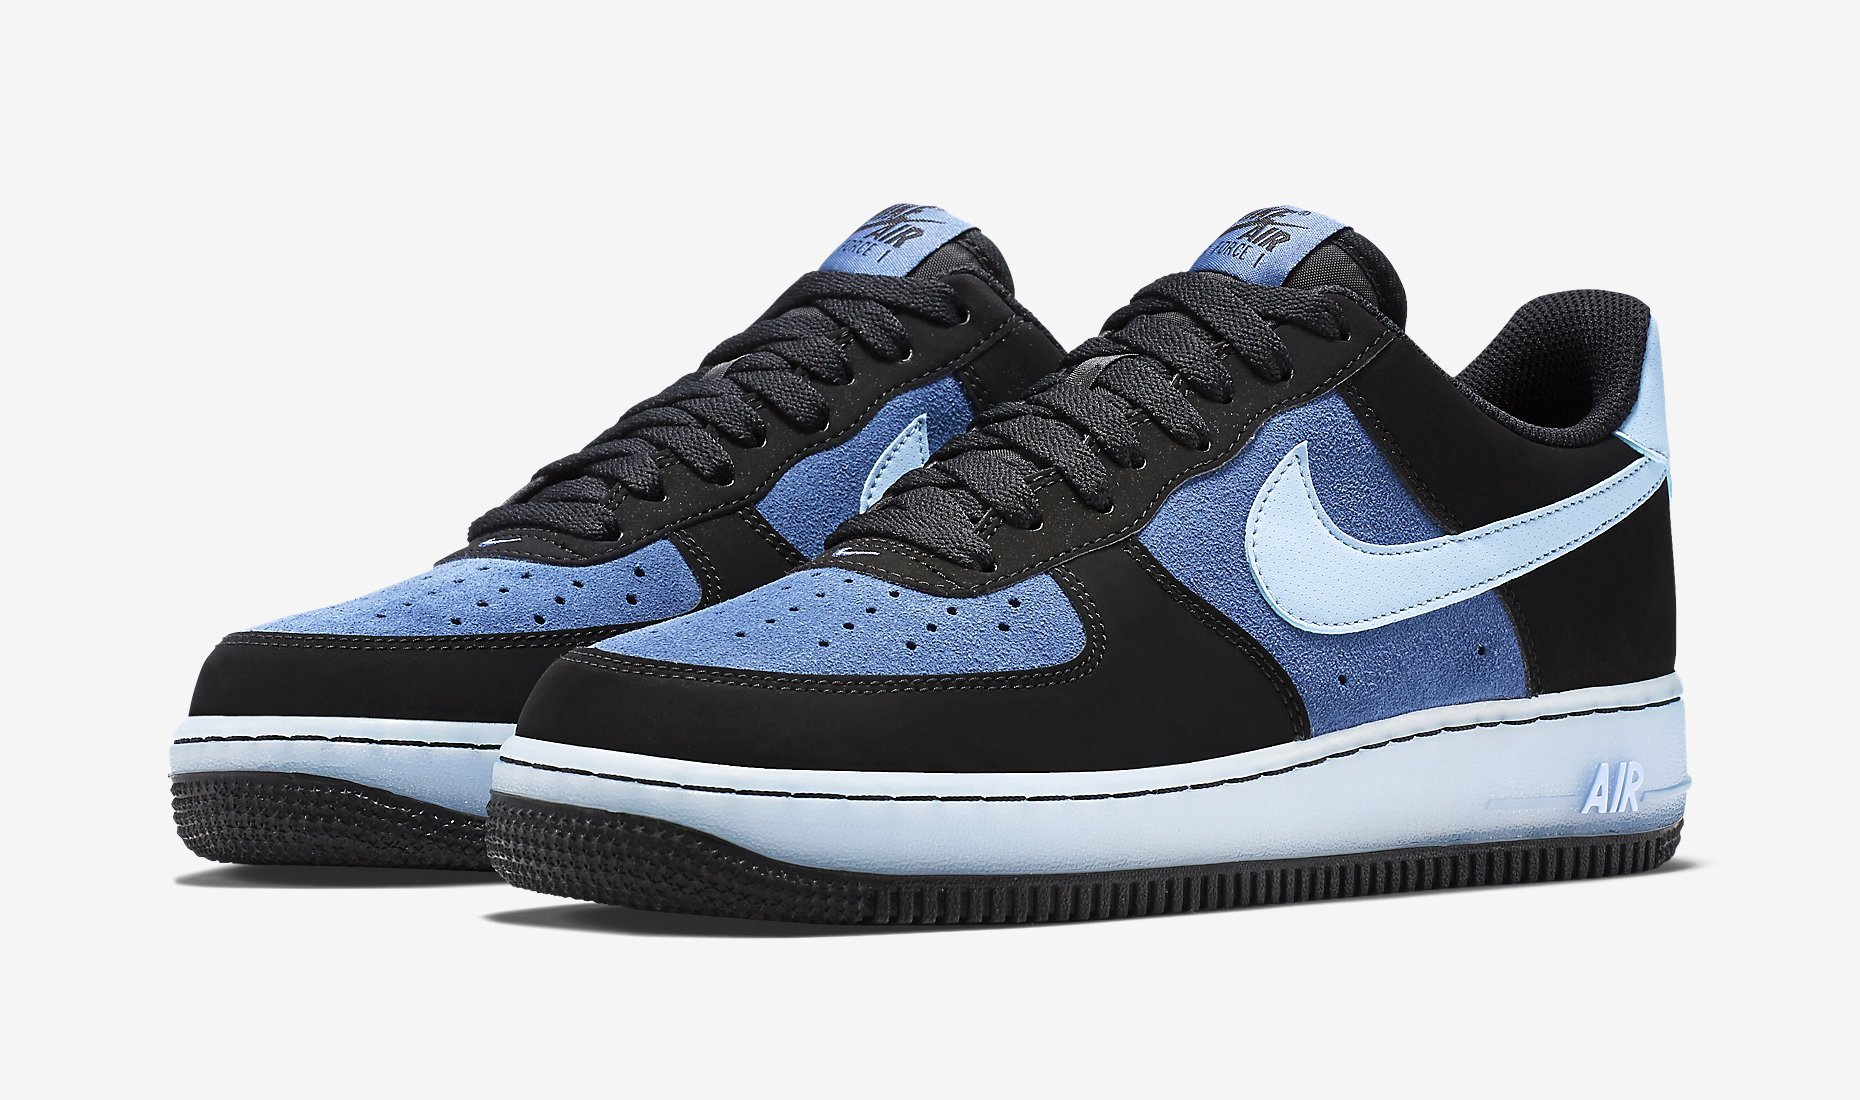 nike air force 1 low blue legend archives air 23 air jordan release dates foamposite air. Black Bedroom Furniture Sets. Home Design Ideas